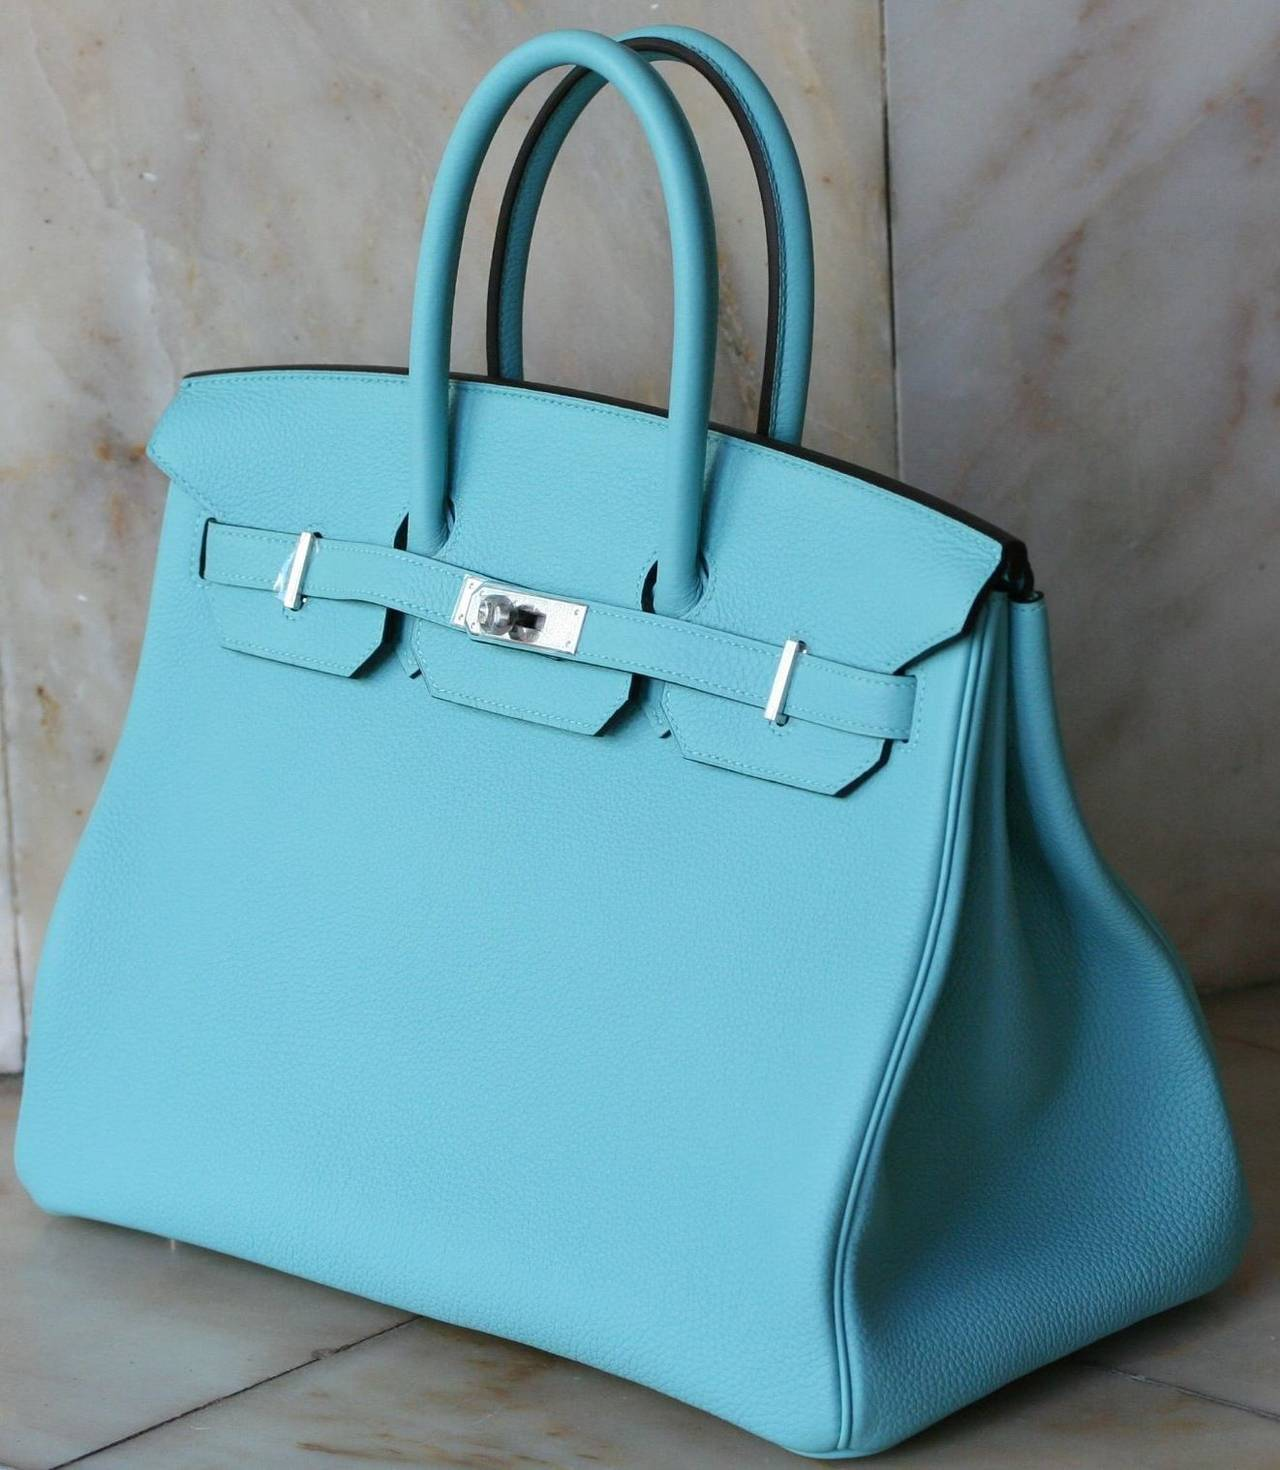 HERMES Birkin Atoll blue Togo '35